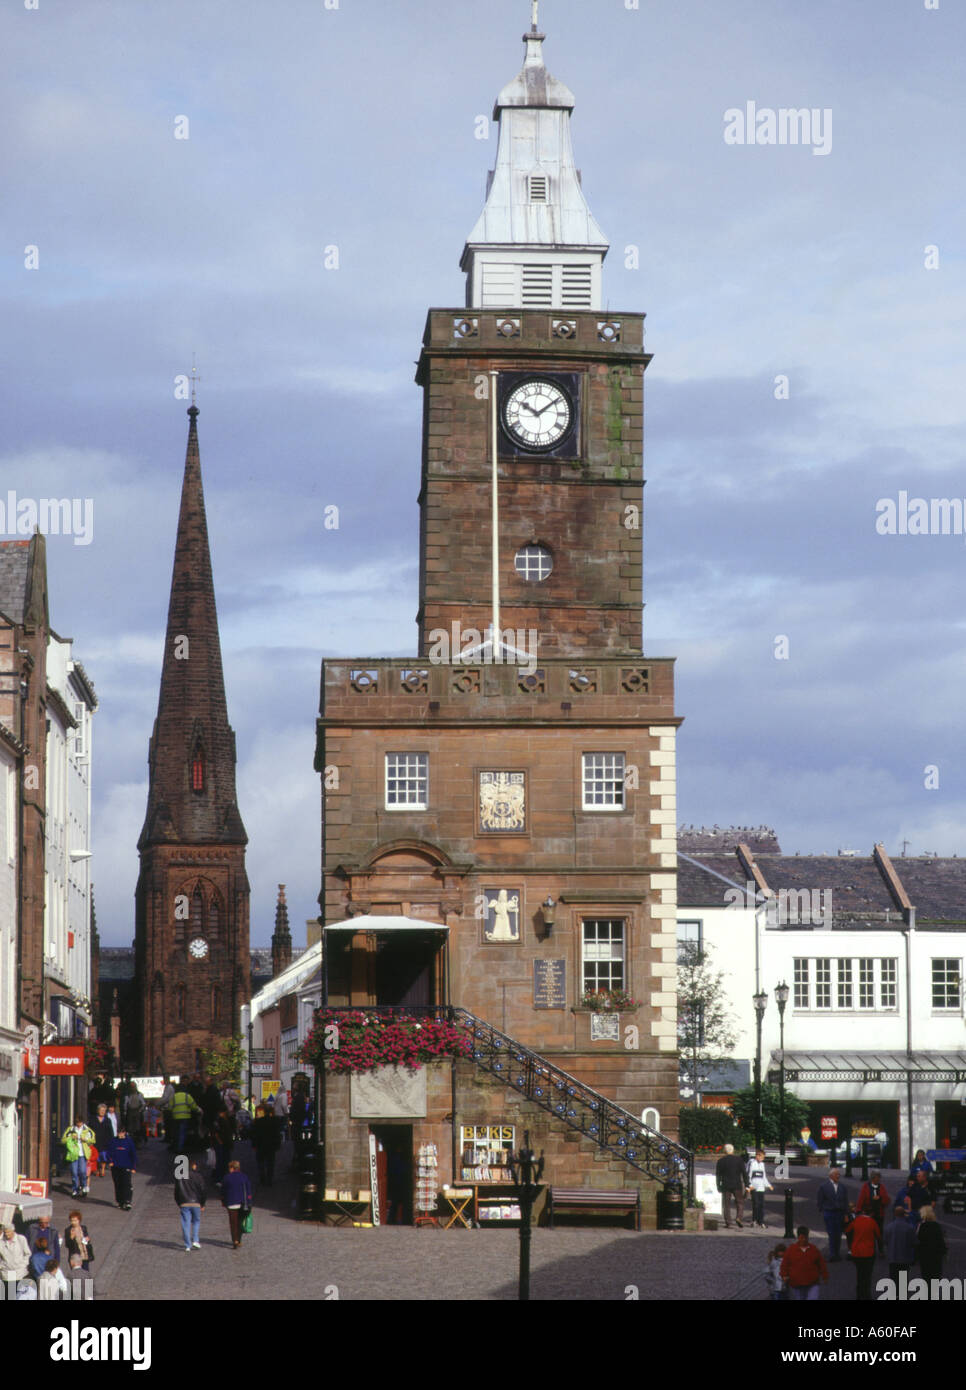 dh Town house DUMFRIES GALLOWAY Main street - Stock Image